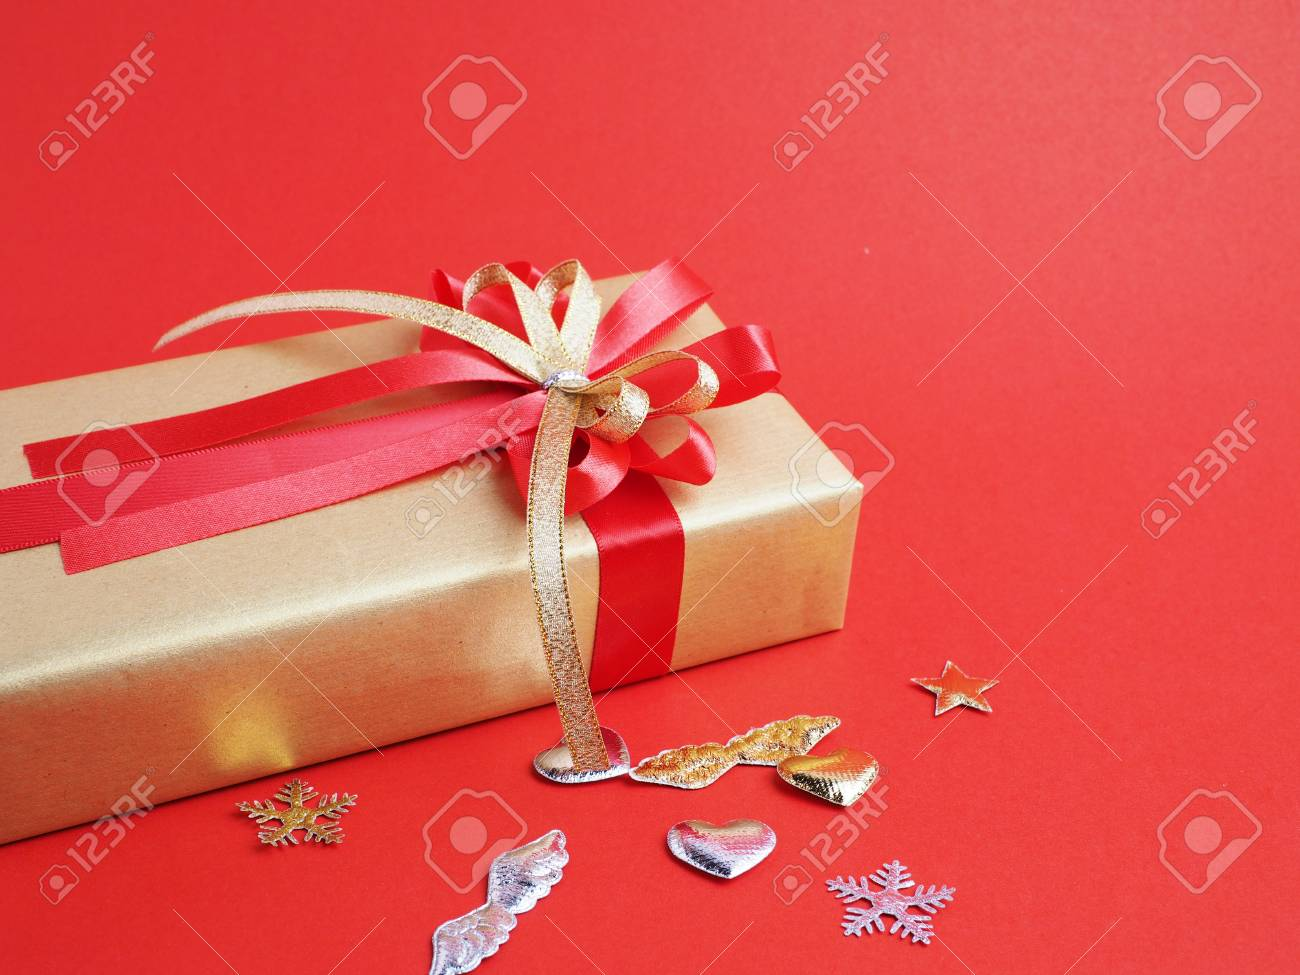 gift box decoration on red background christmas and new year concept stock photo